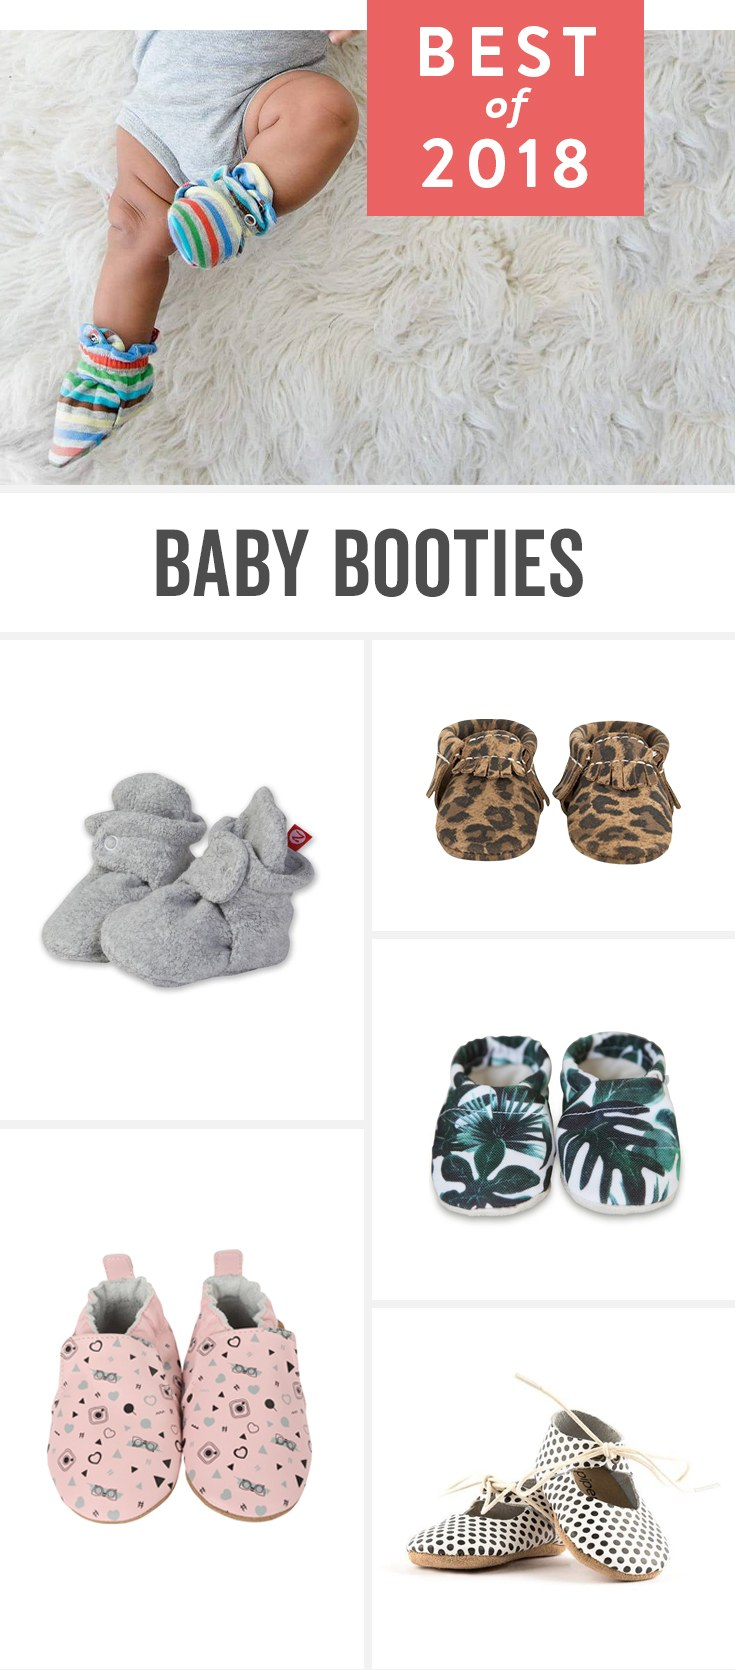 Babylist is the baby registry that lets you add any item from any store to one beautiful registry including the best baby booties. Knit/crochet options for boy or girl, Etsy booties or shoes that stay on newborns.